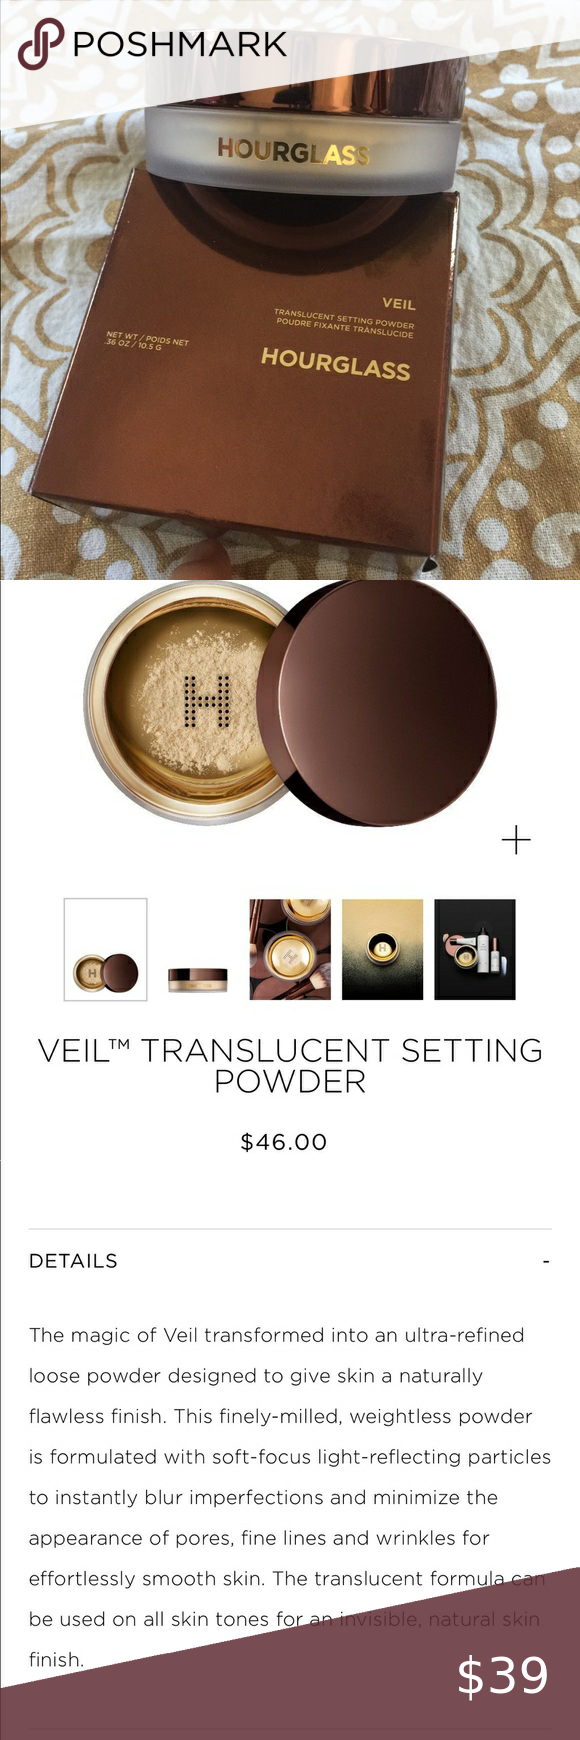 Hourglass veil translucent setting powder in 2020